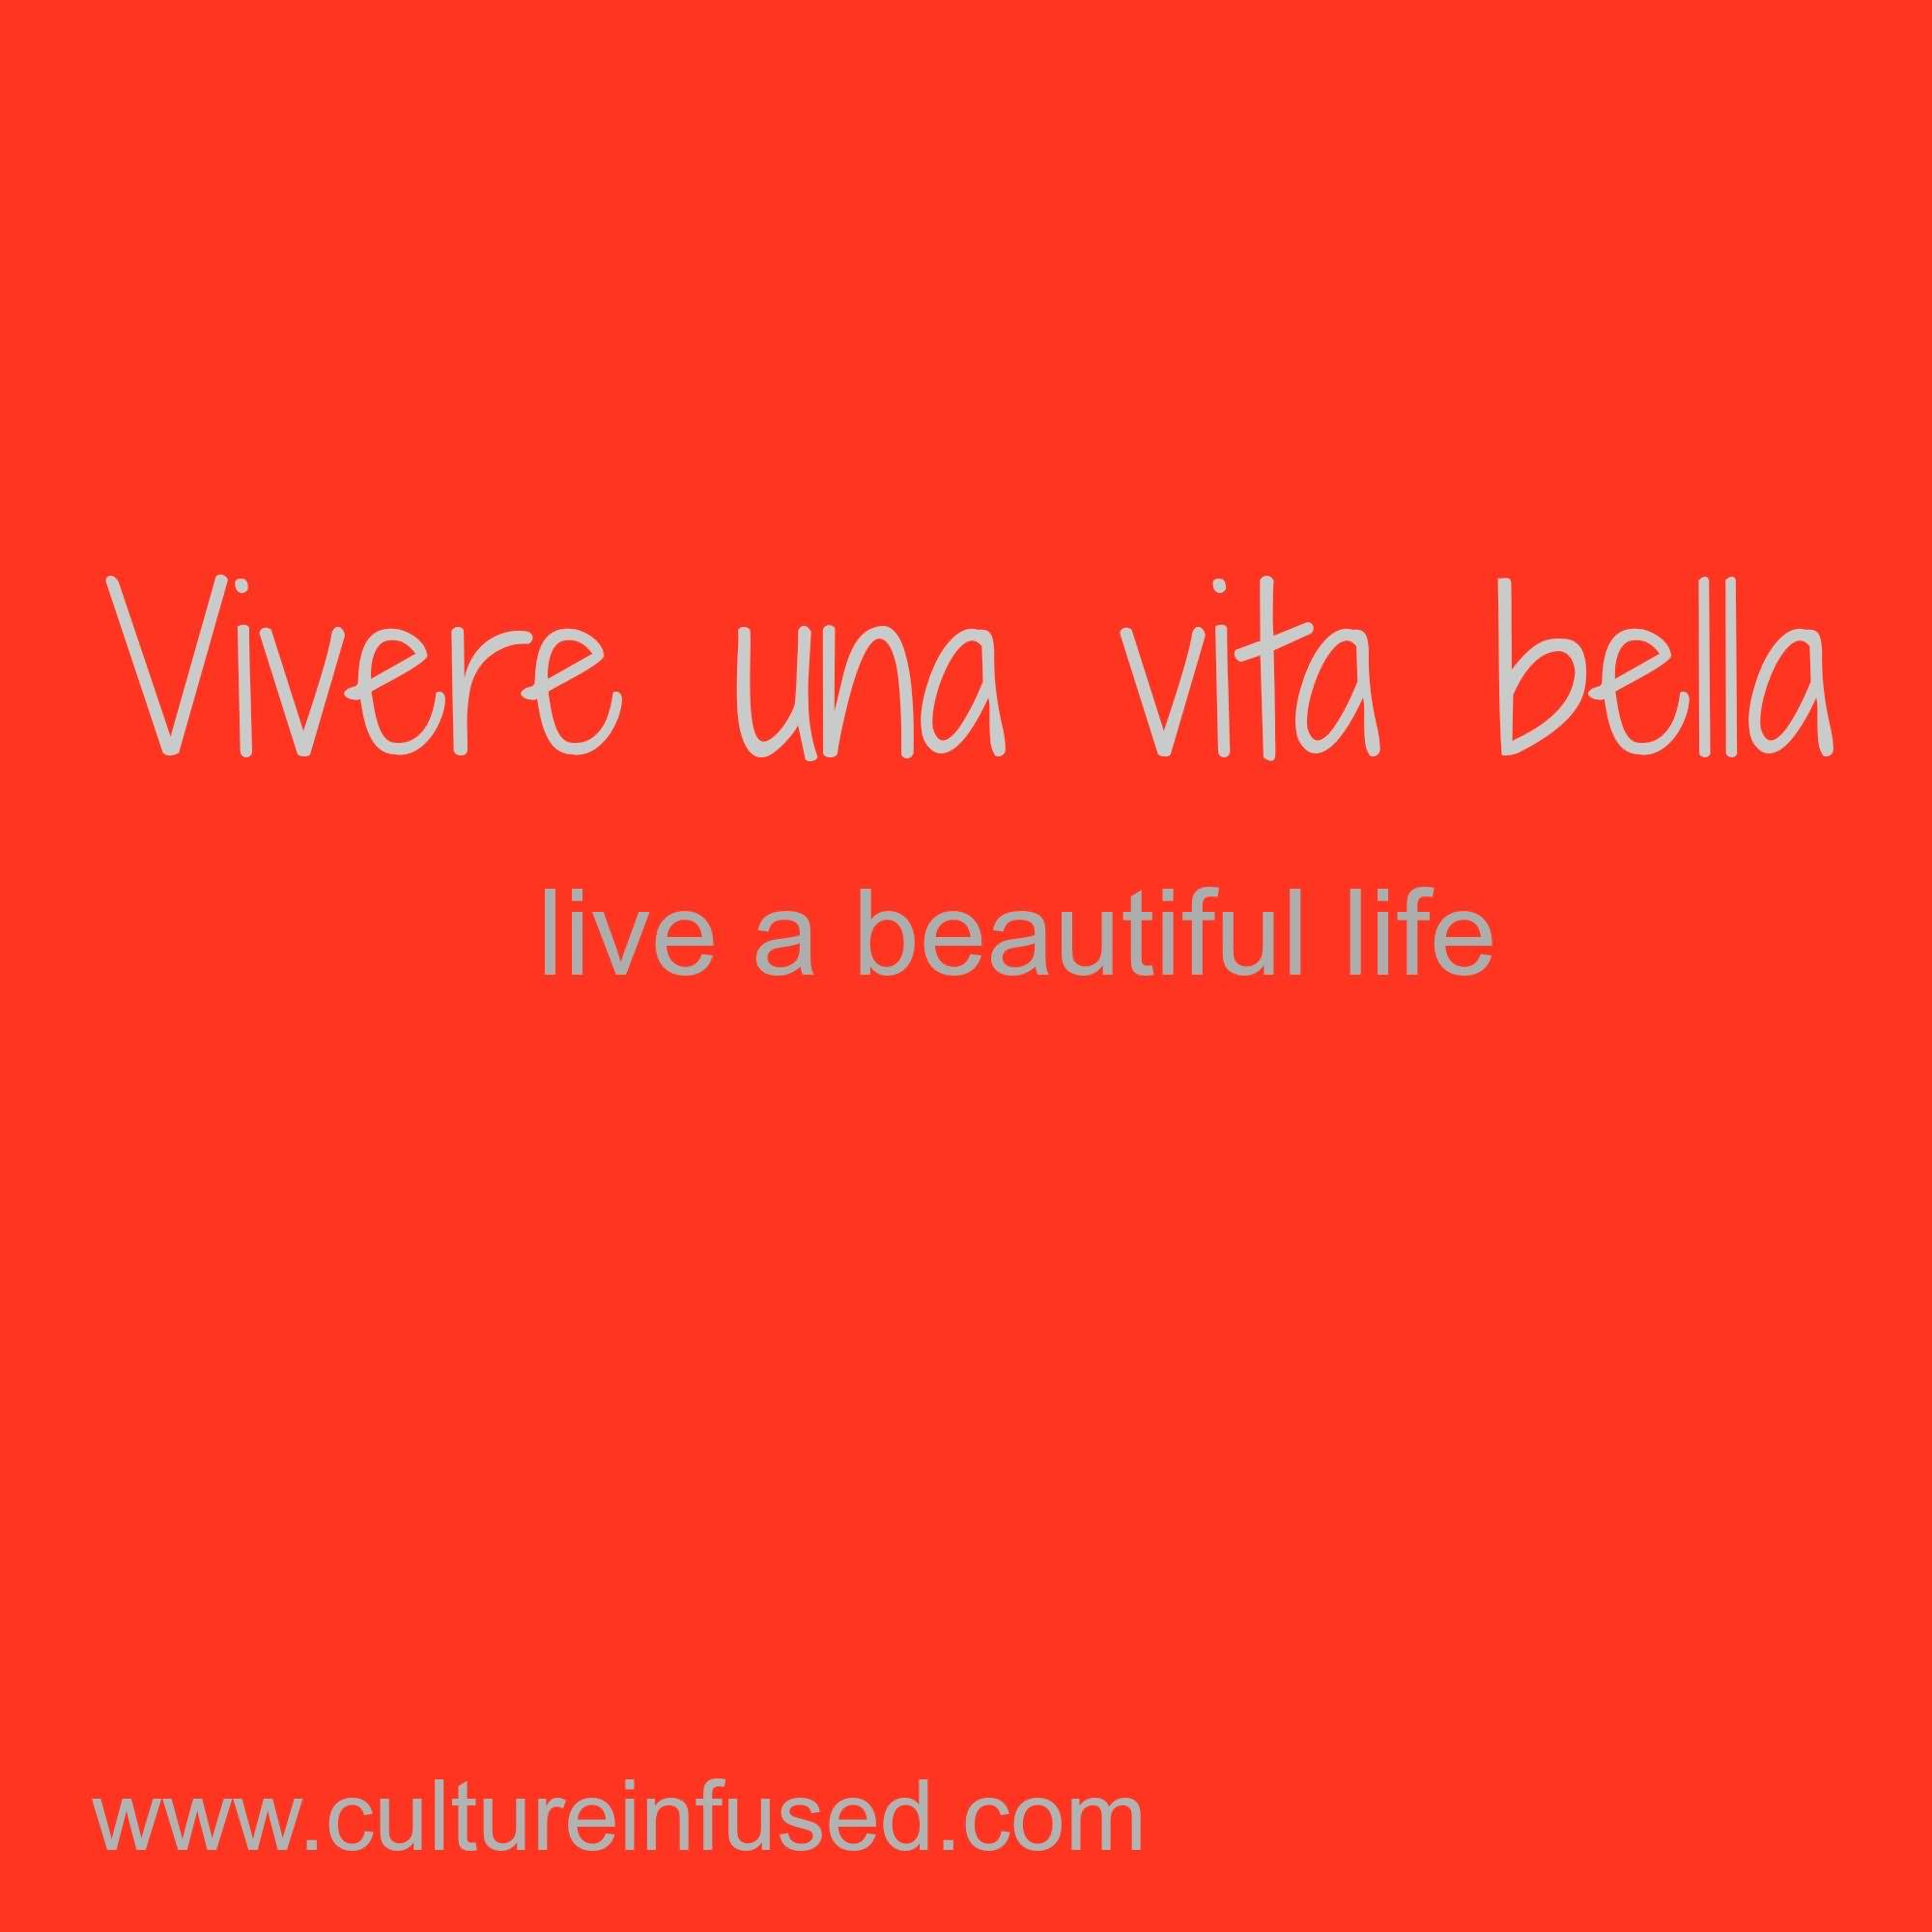 20 Italian Quotes About Life Sayings & Images | QuotesBae